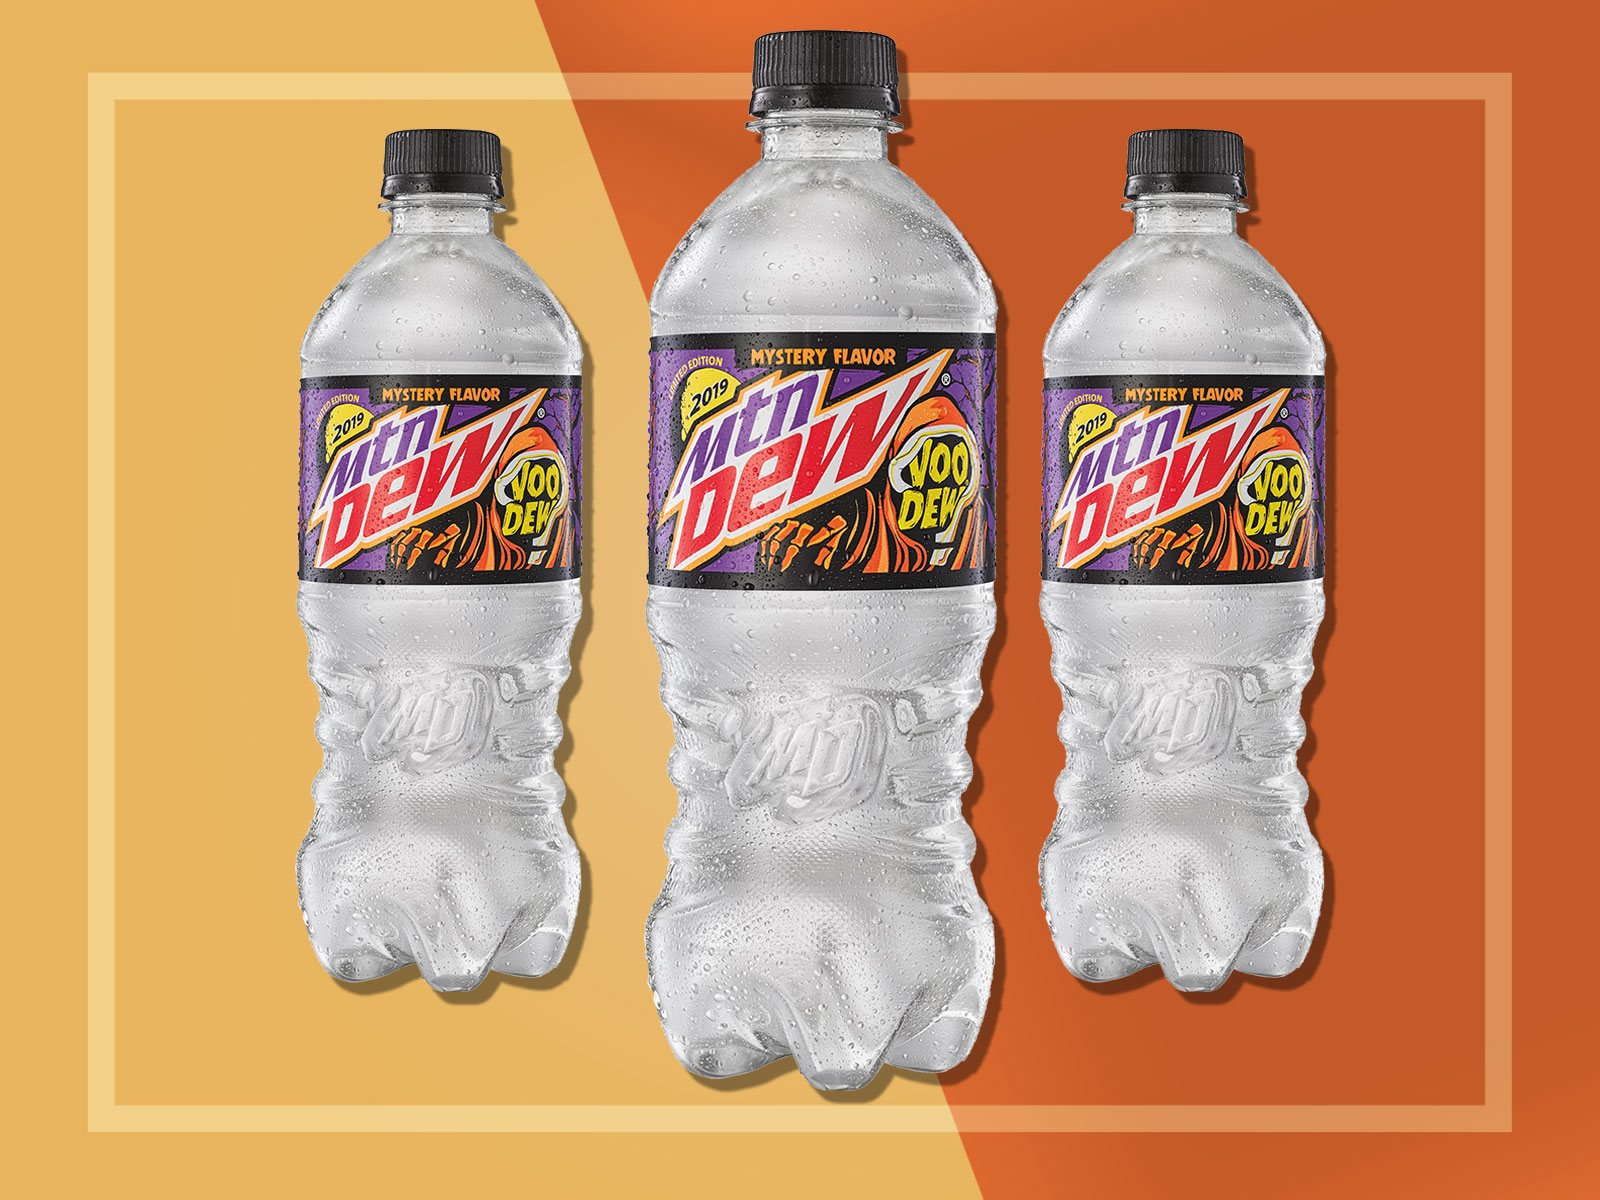 Mountain Dew Mystery Flavor